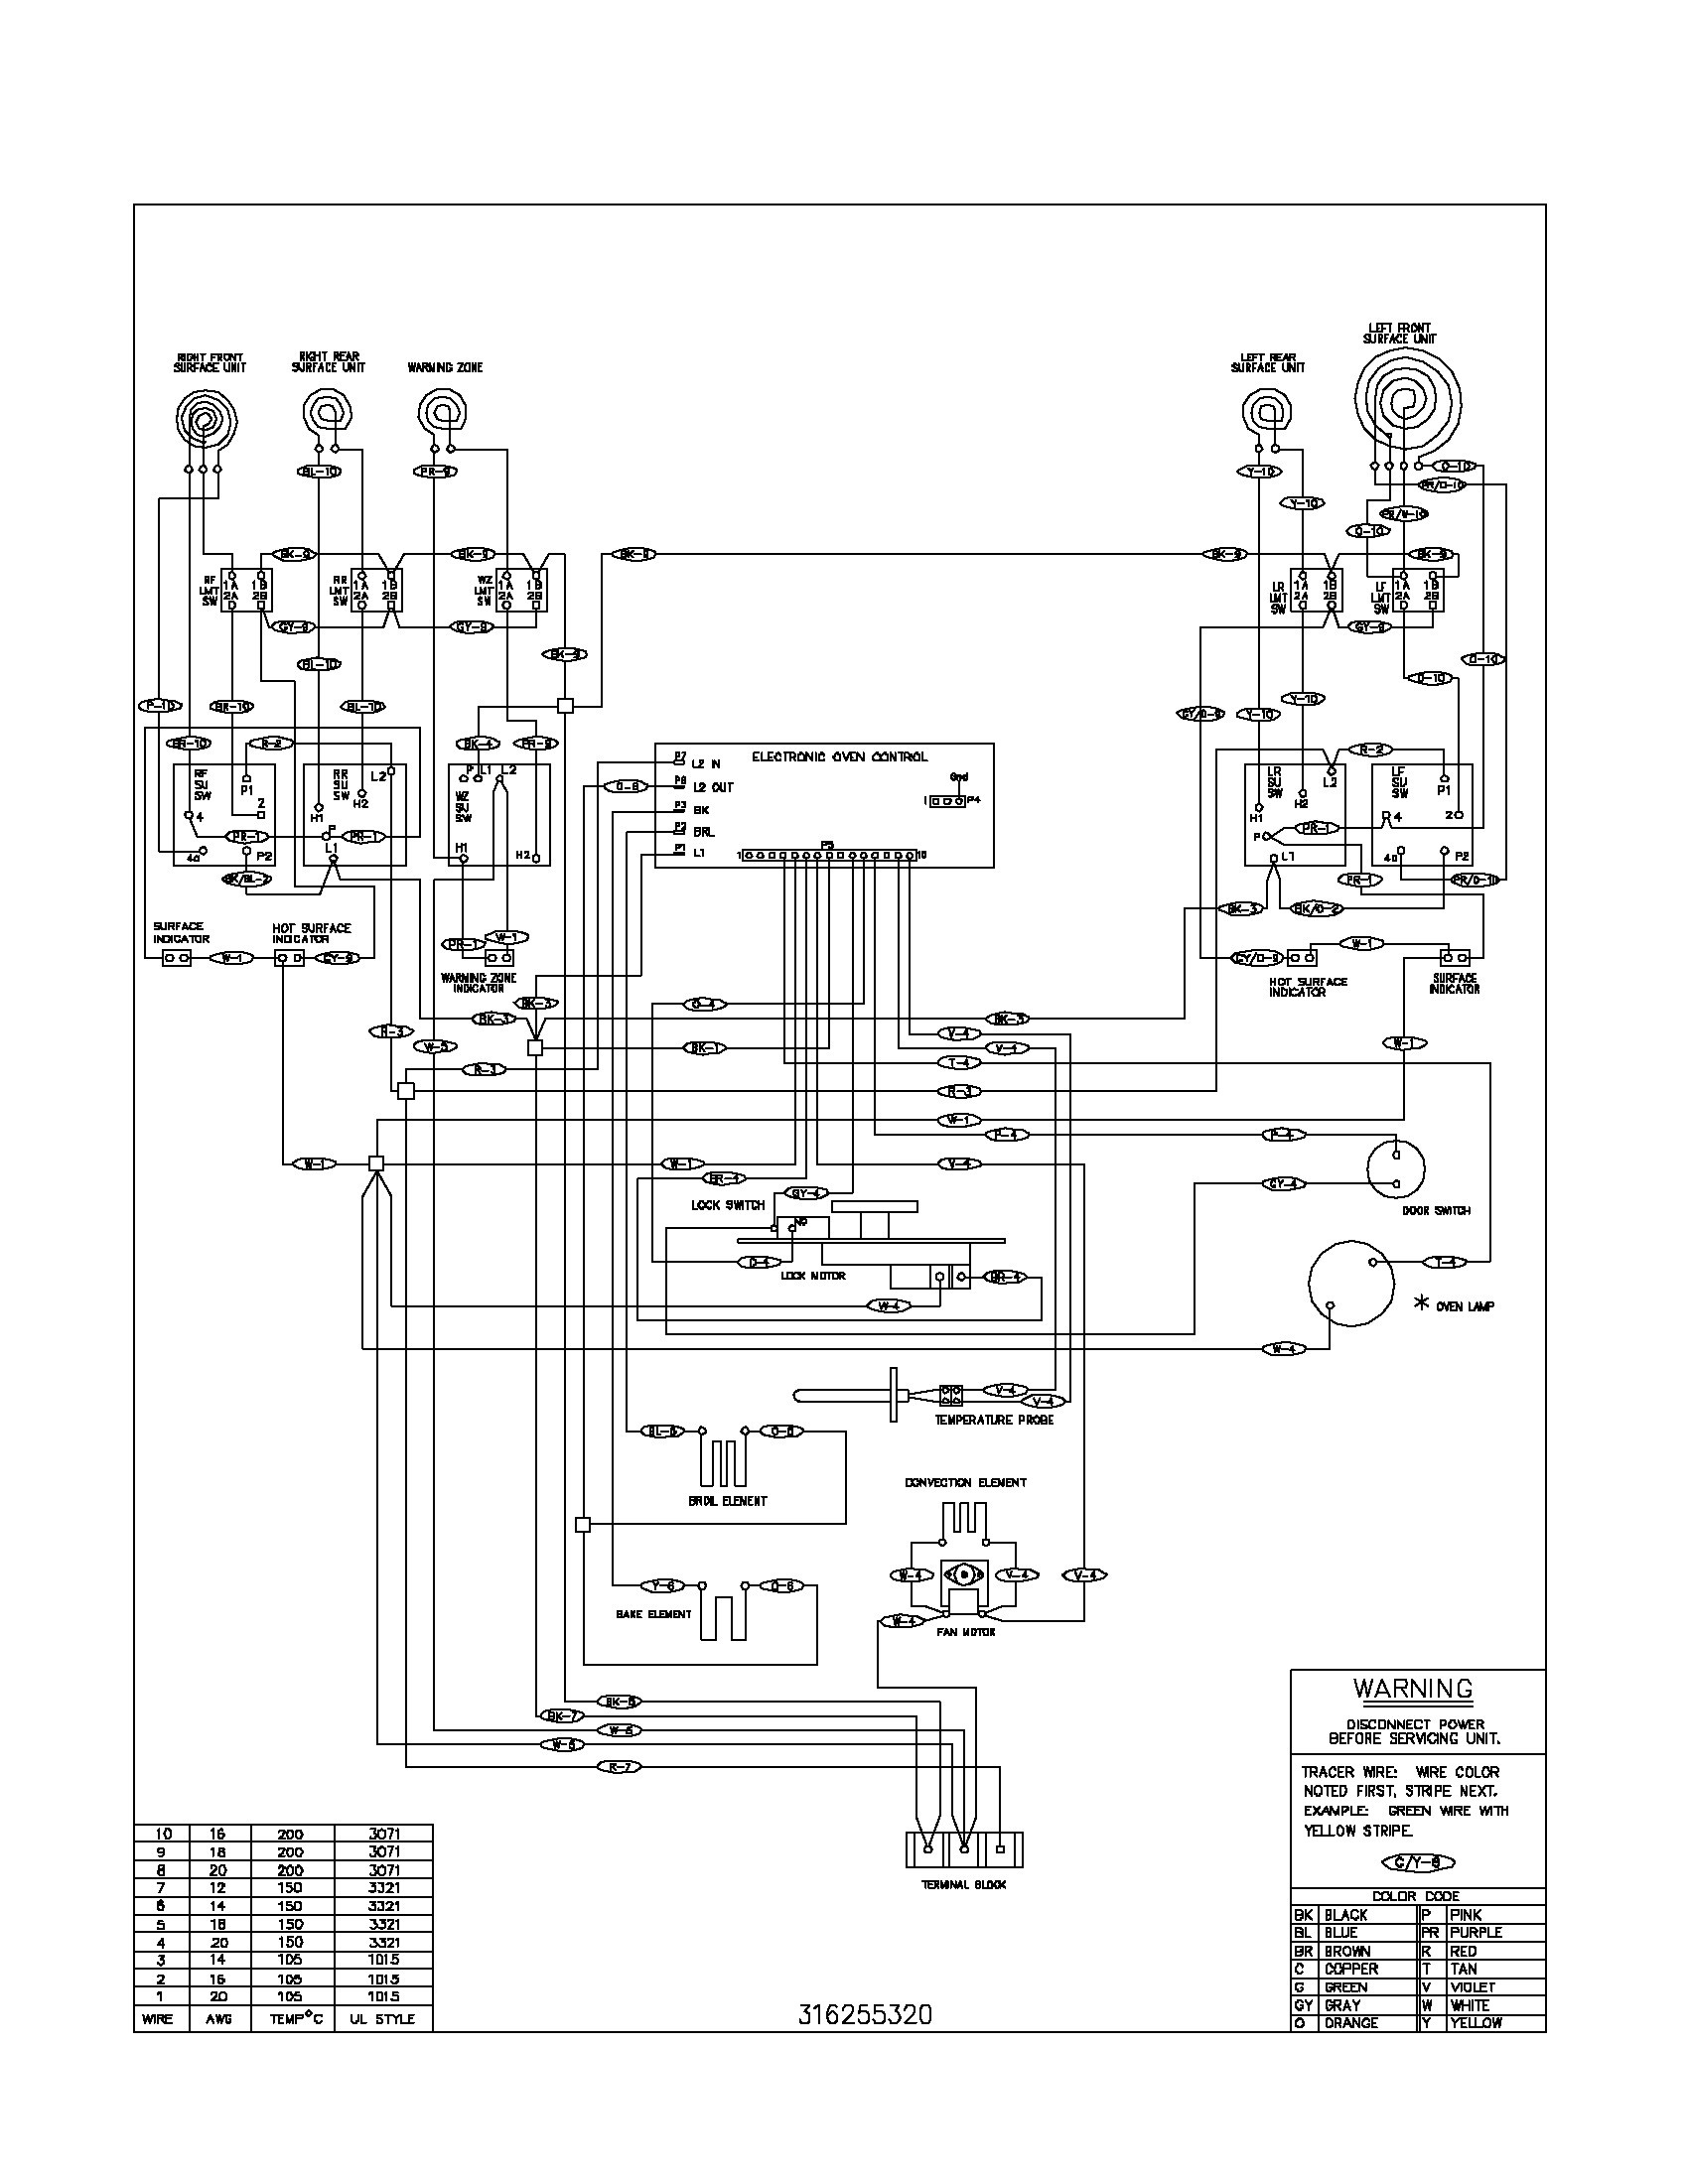 medium resolution of wiring diagram for whirlpool double ovens wiring diagram load wiring diagram for whirlpool double oven wiring diagram for whirlpool oven